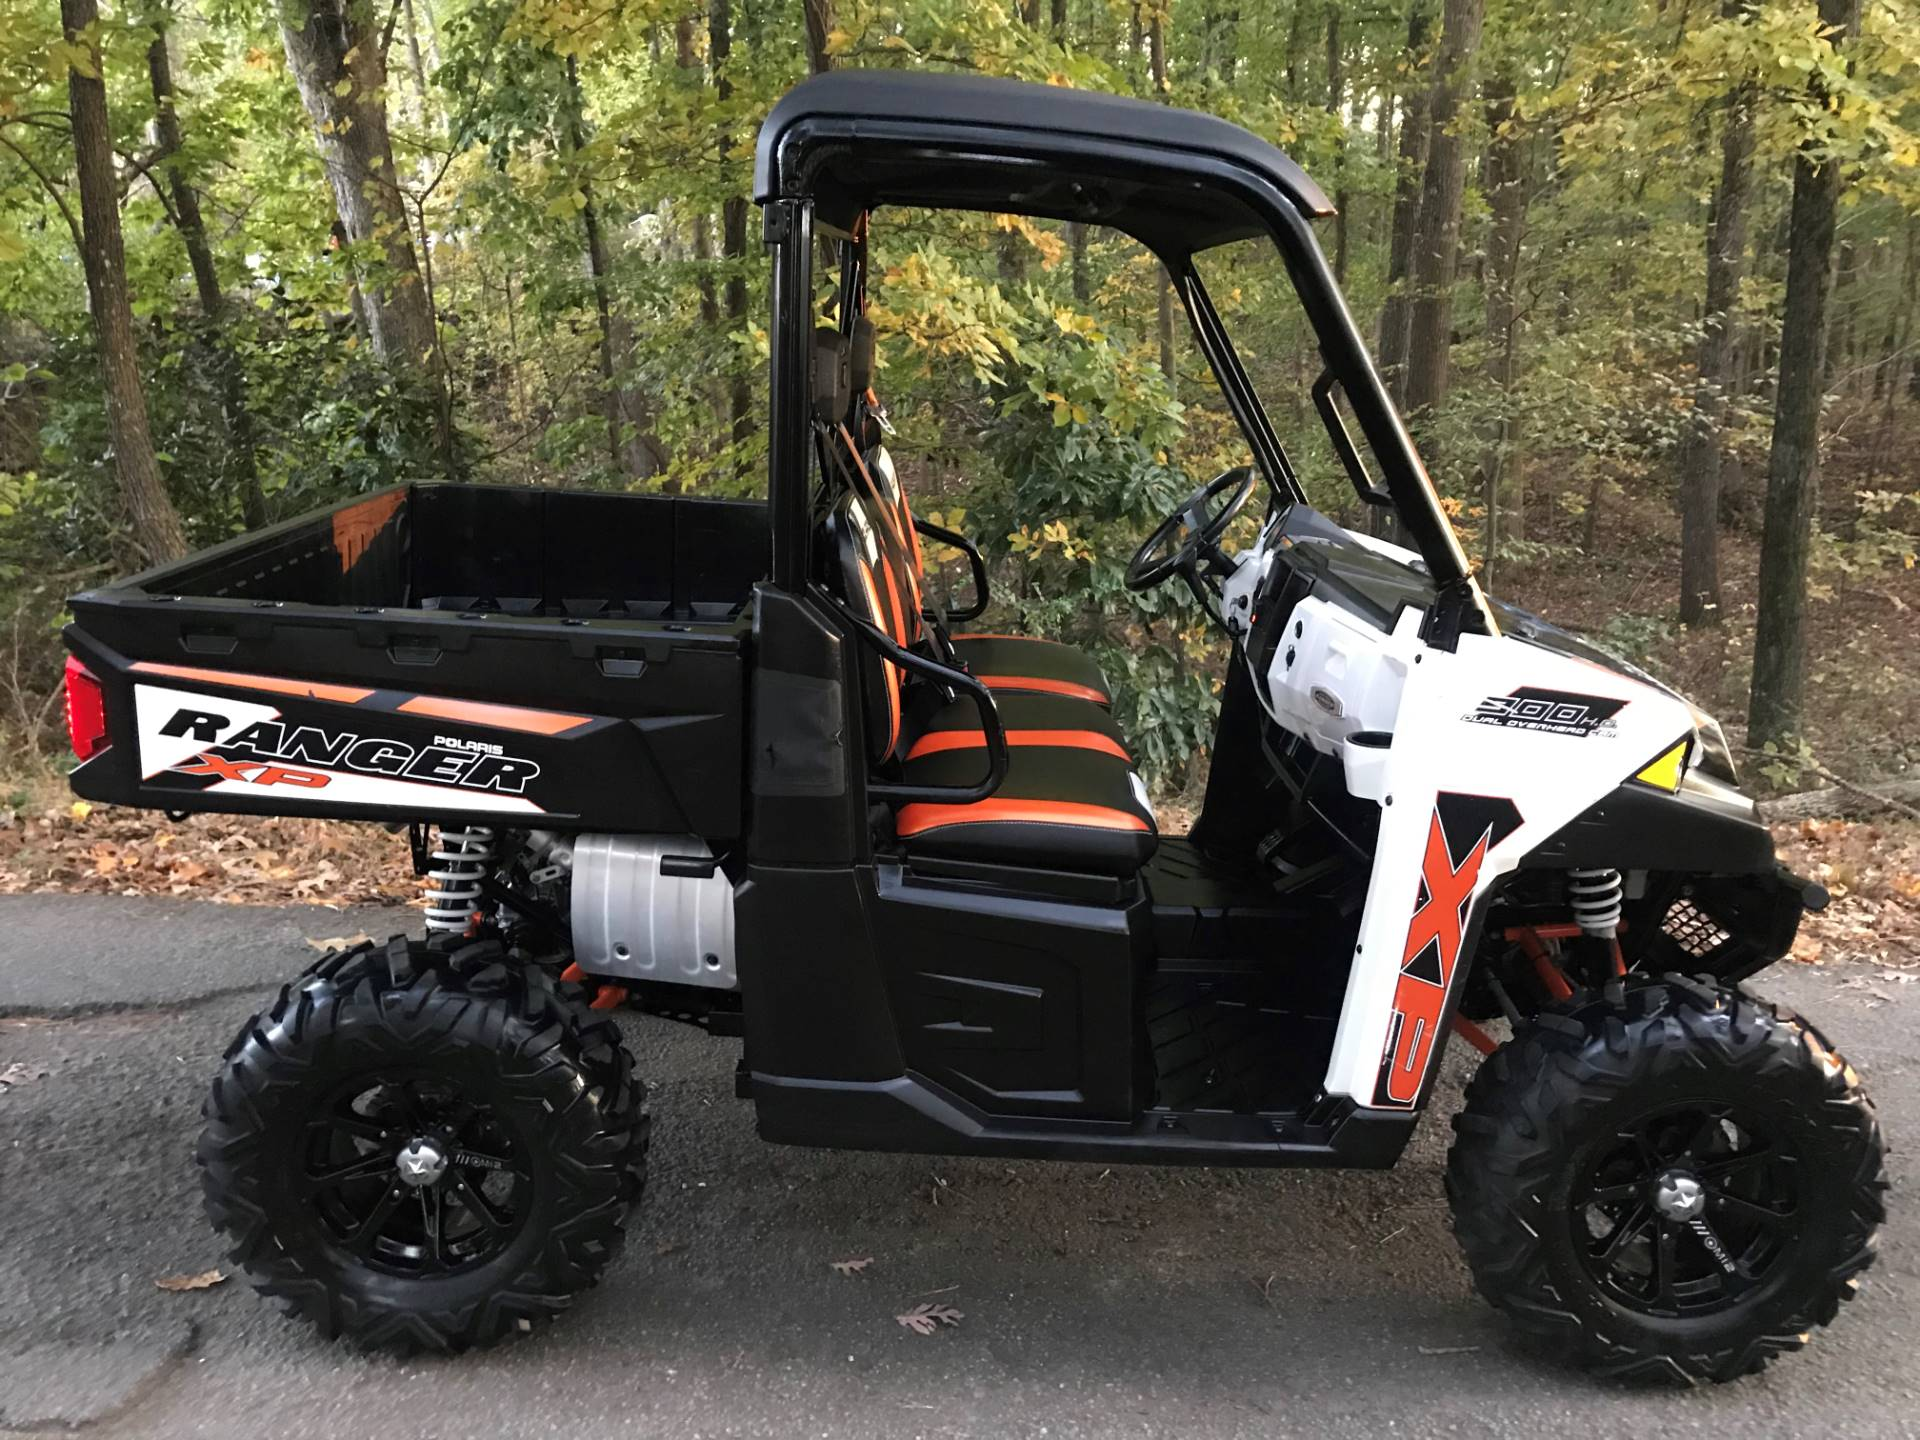 2015 POLARIS RANGER 900 XP EPS in Woodstock, Georgia - Photo 1